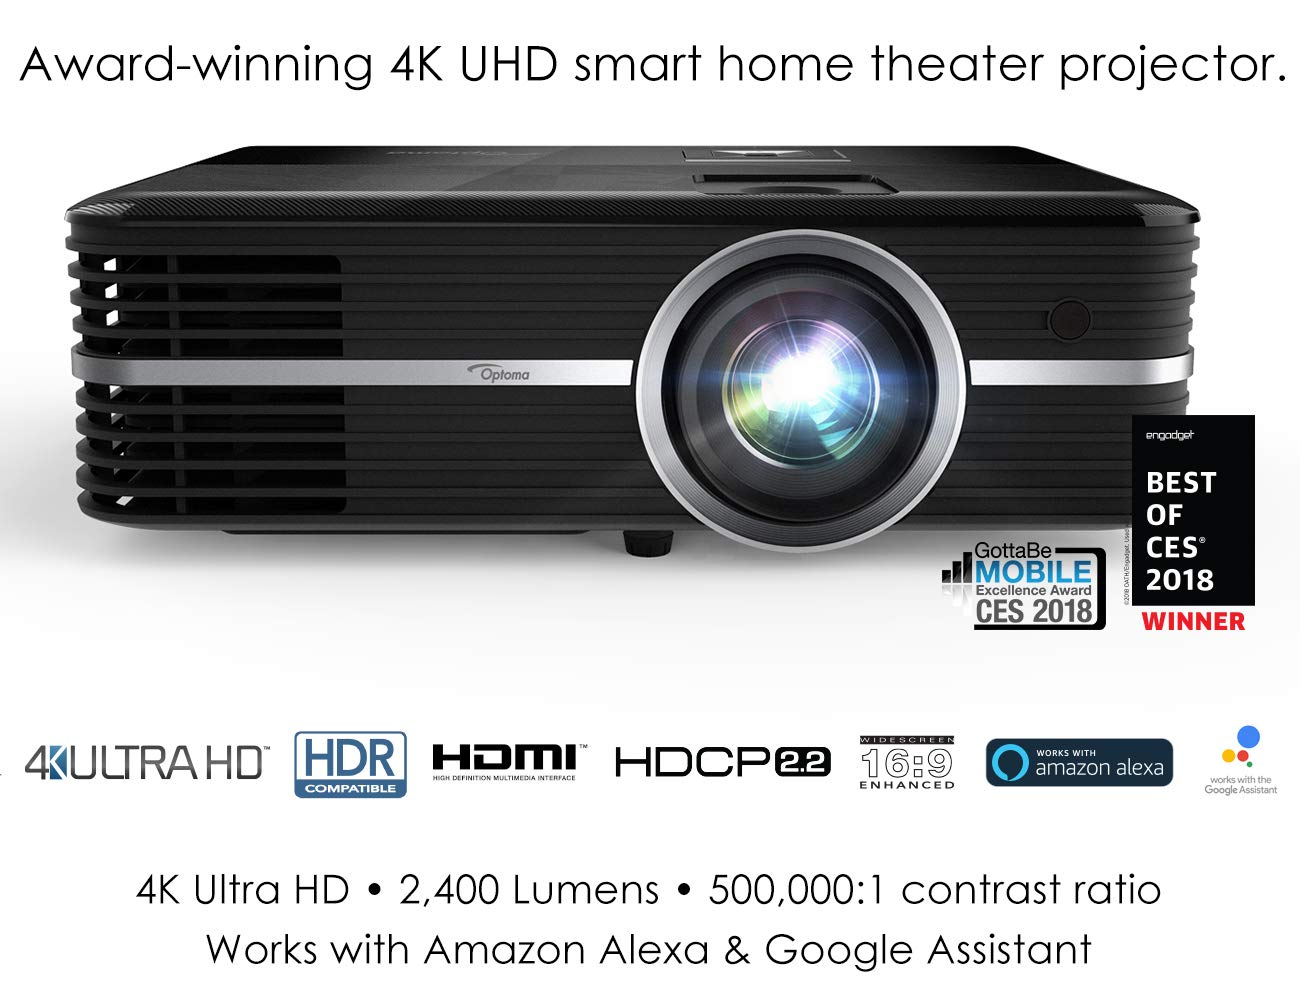 Optoma UHD51A True 4K UHD Smart Projector | Bright 2,400 Lumens | HDR10 |  Works with Alexa and Google Assistant | Voice Command to Activate Projector